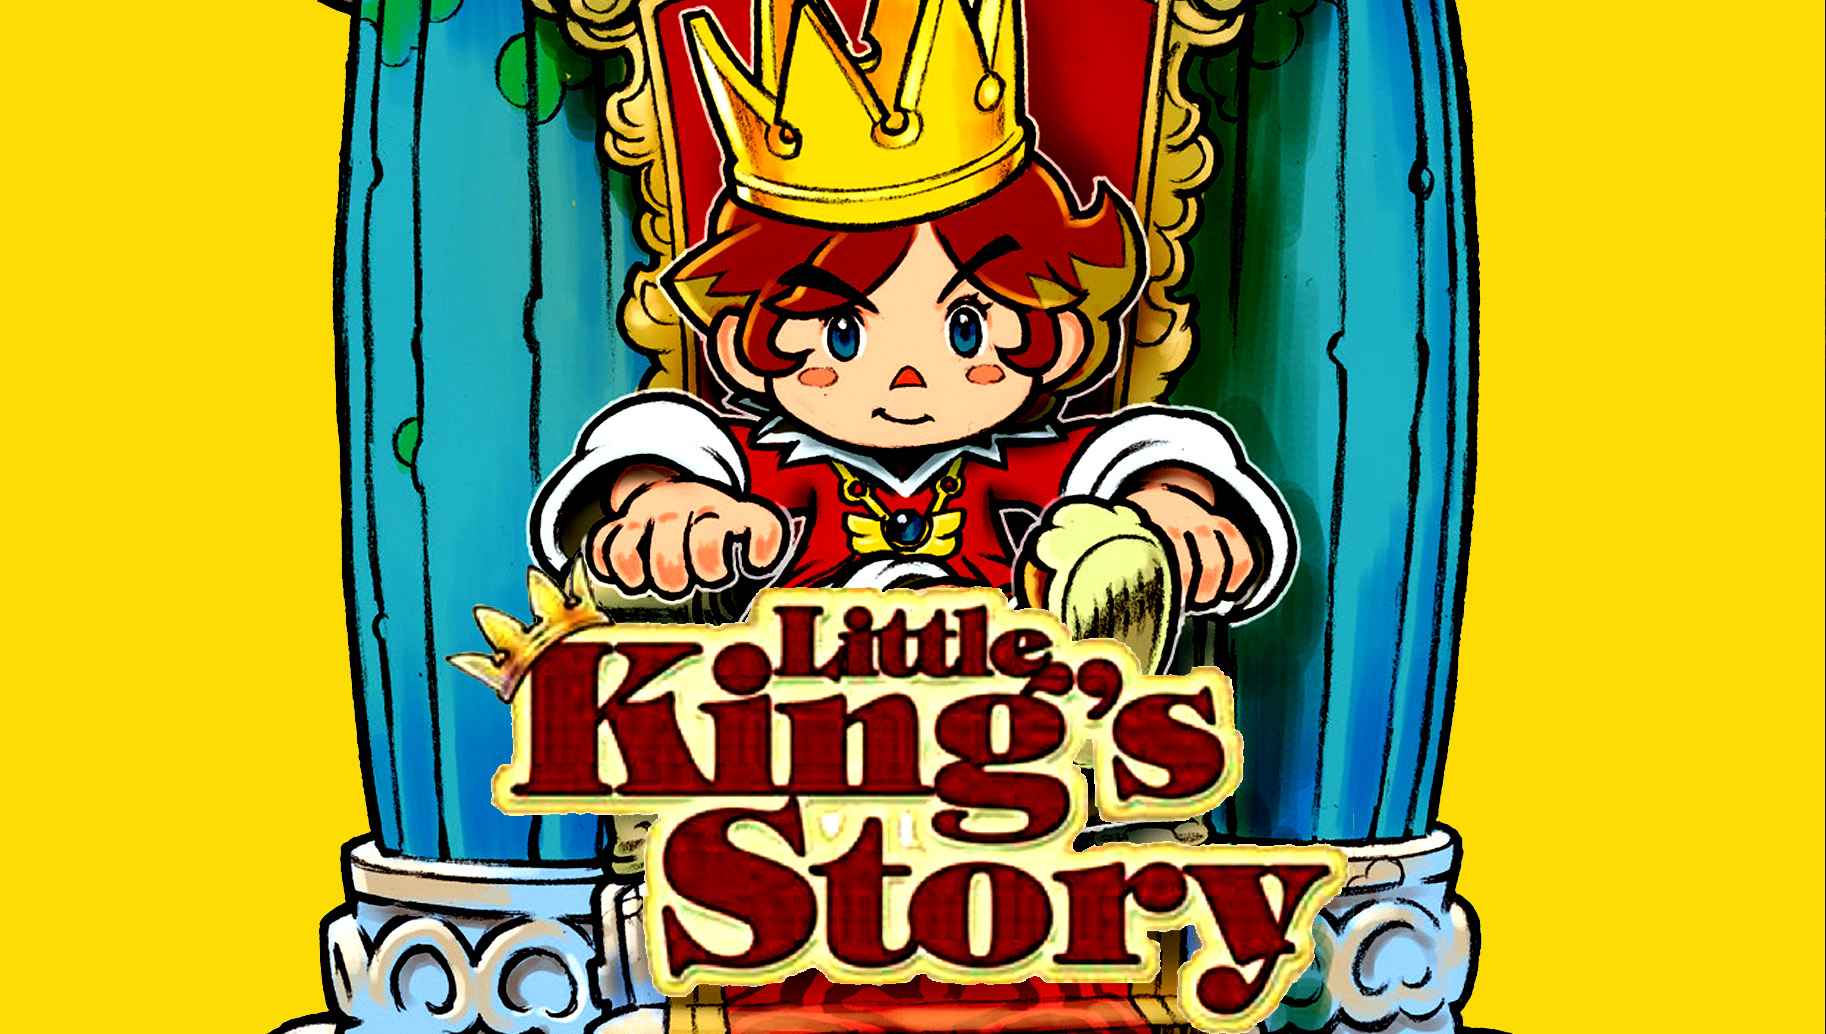 Little Kings Story Free Download